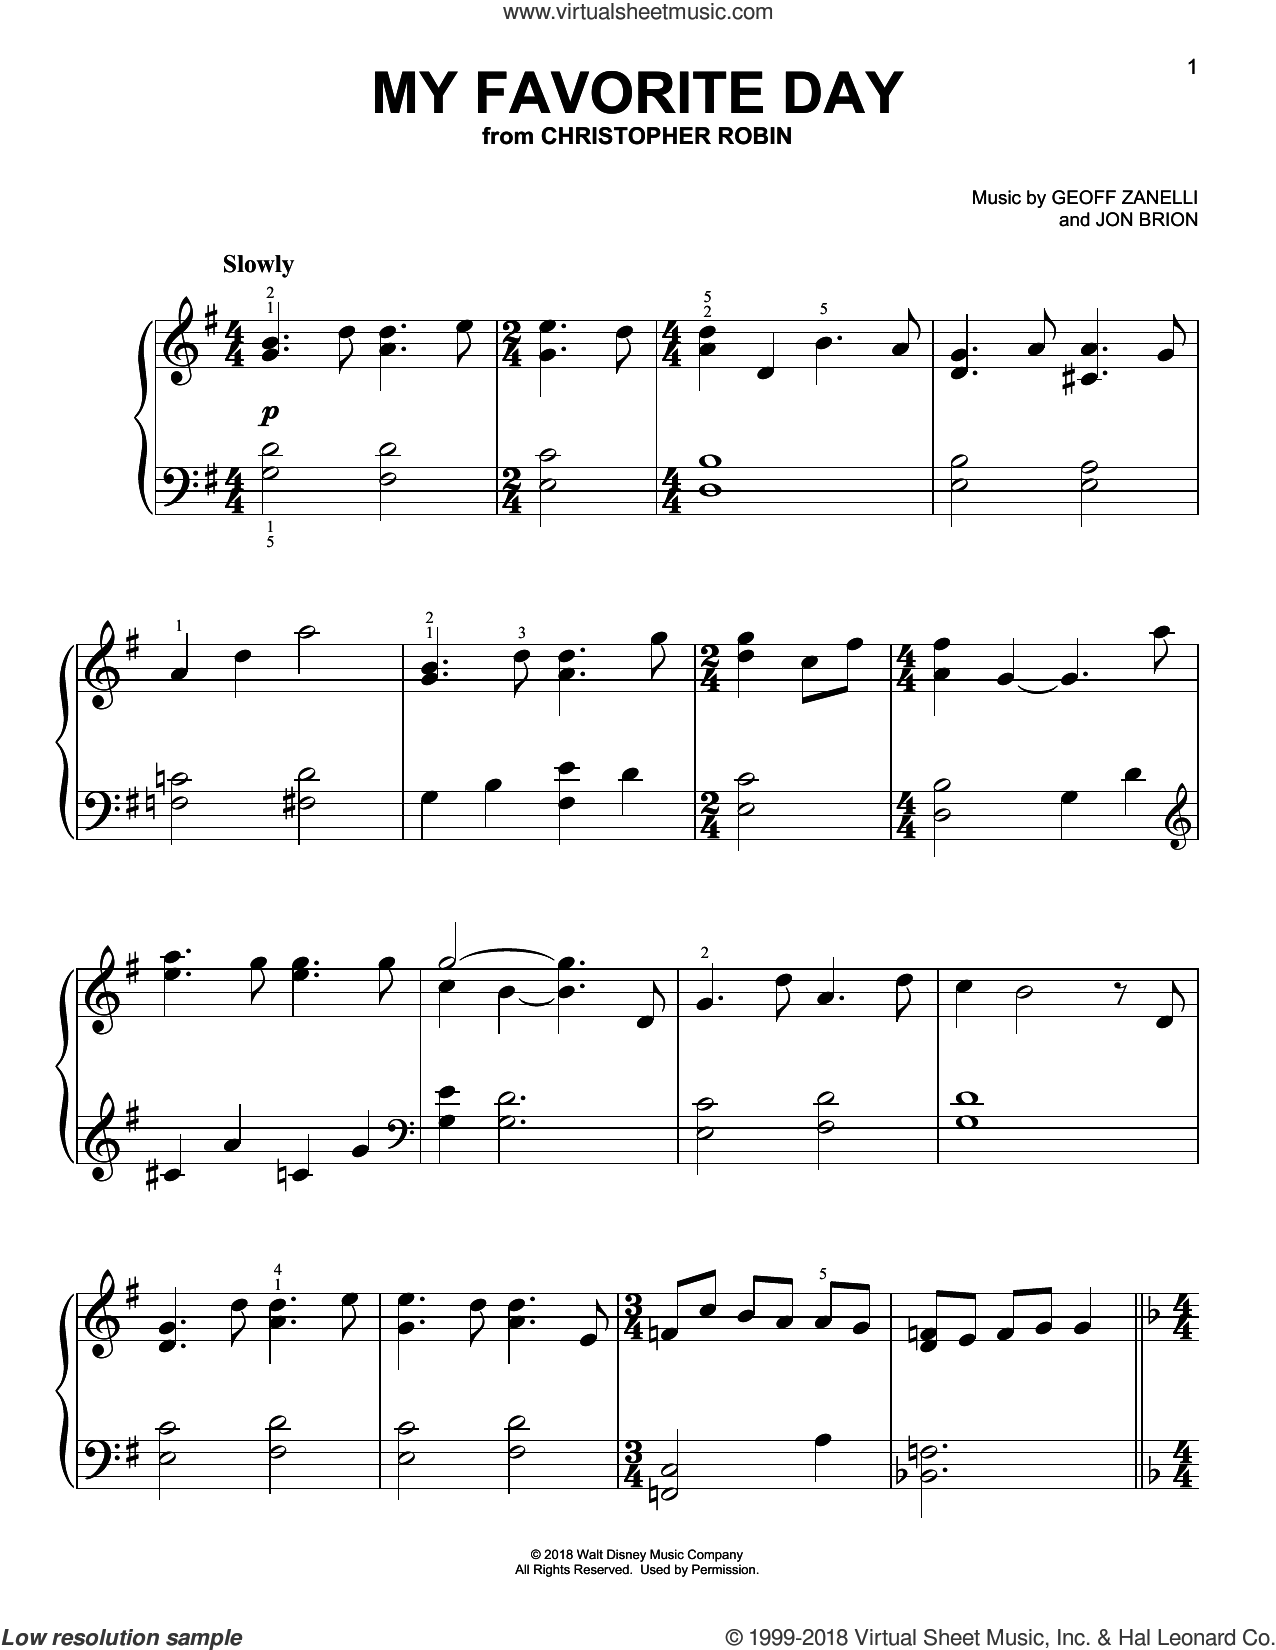 My Favorite Day (from Christopher Robin) sheet music for piano solo by Geoff Zanelli & Jon Brion, Geoff Zanelli and Jon Brion, easy skill level